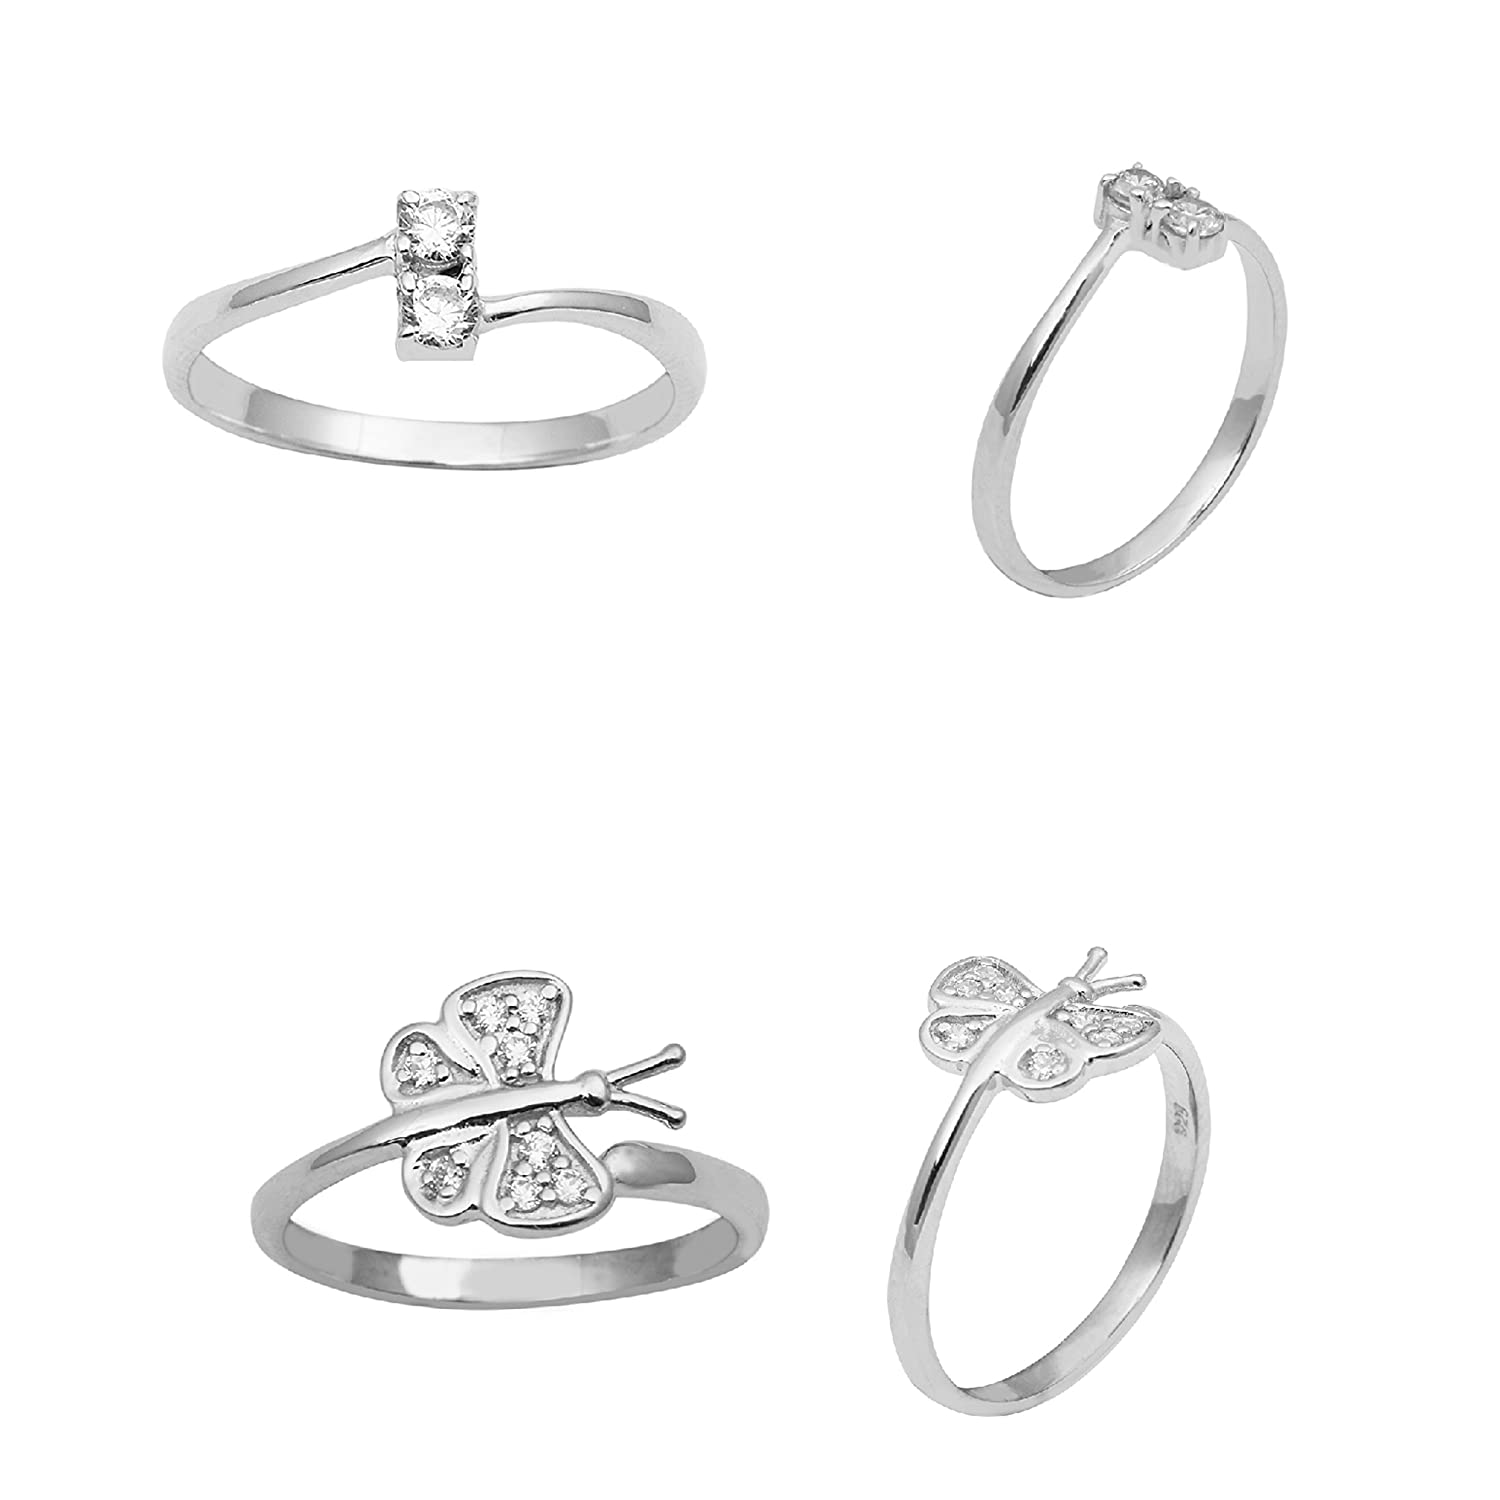 Butterfly design Adjustable Toe Ring Free Shipping in USA! Sterling Silver